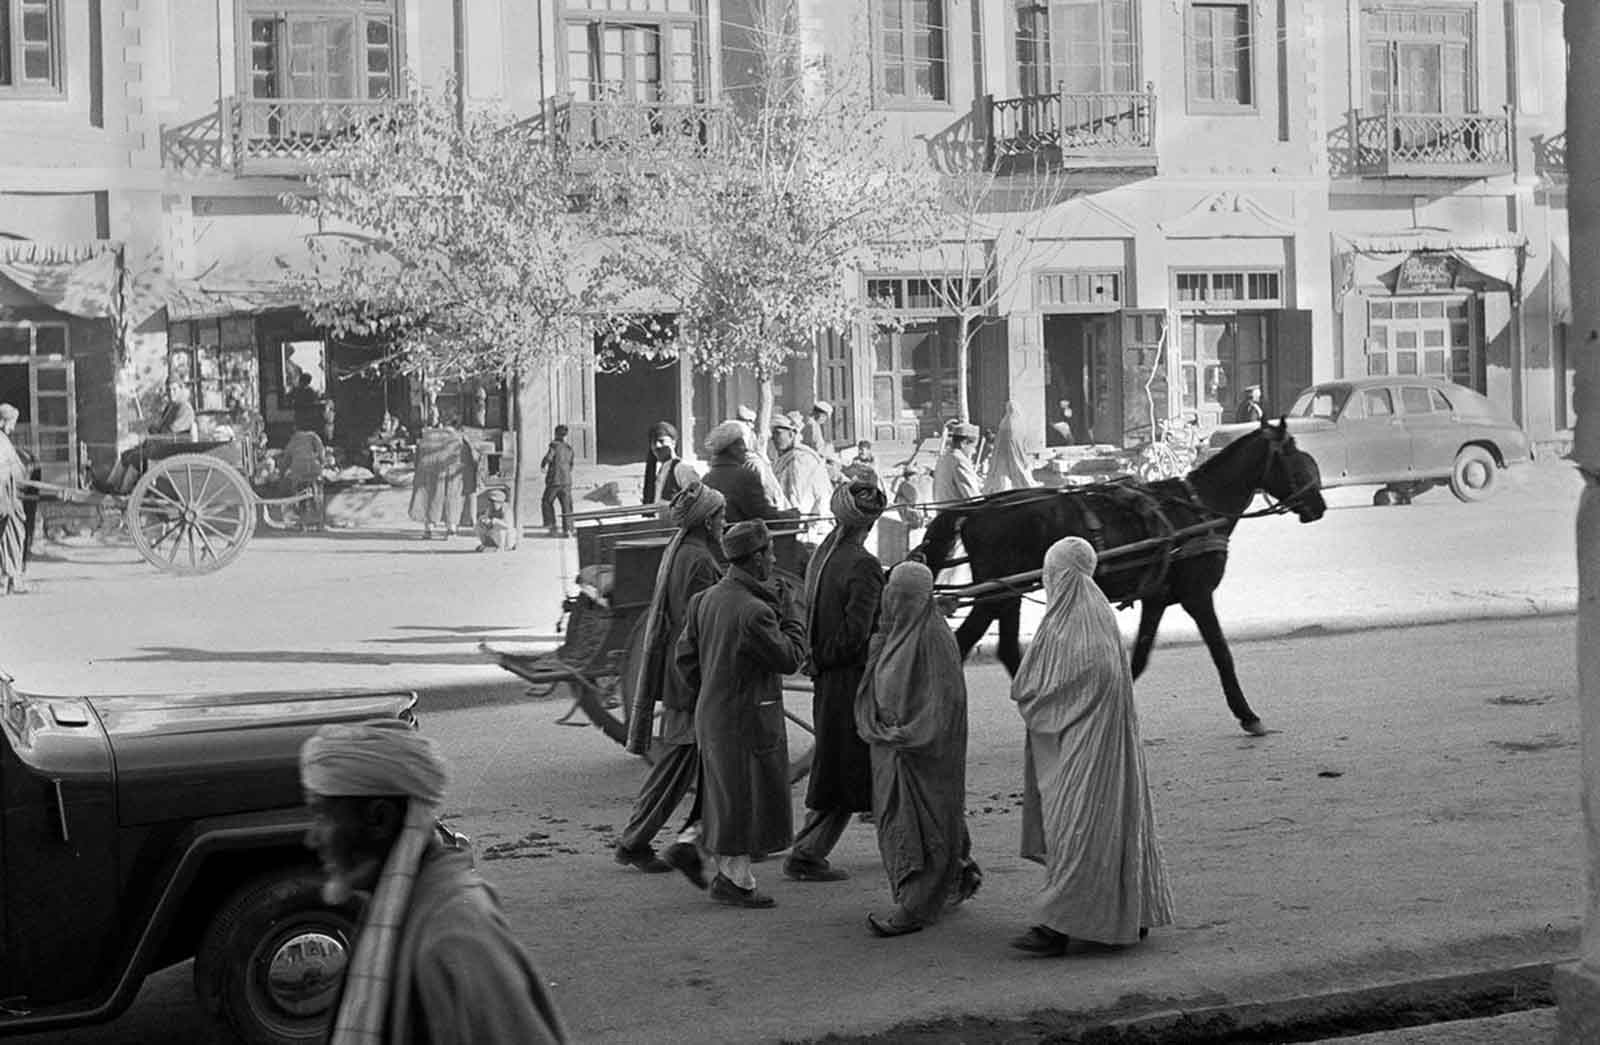 Women, wearing traditional burqas and Persian slippers, walk alongside men, cars and horse carts, in a street in Kabul, in 1951. At the time, this street was one of only three paved streets in the capital city.